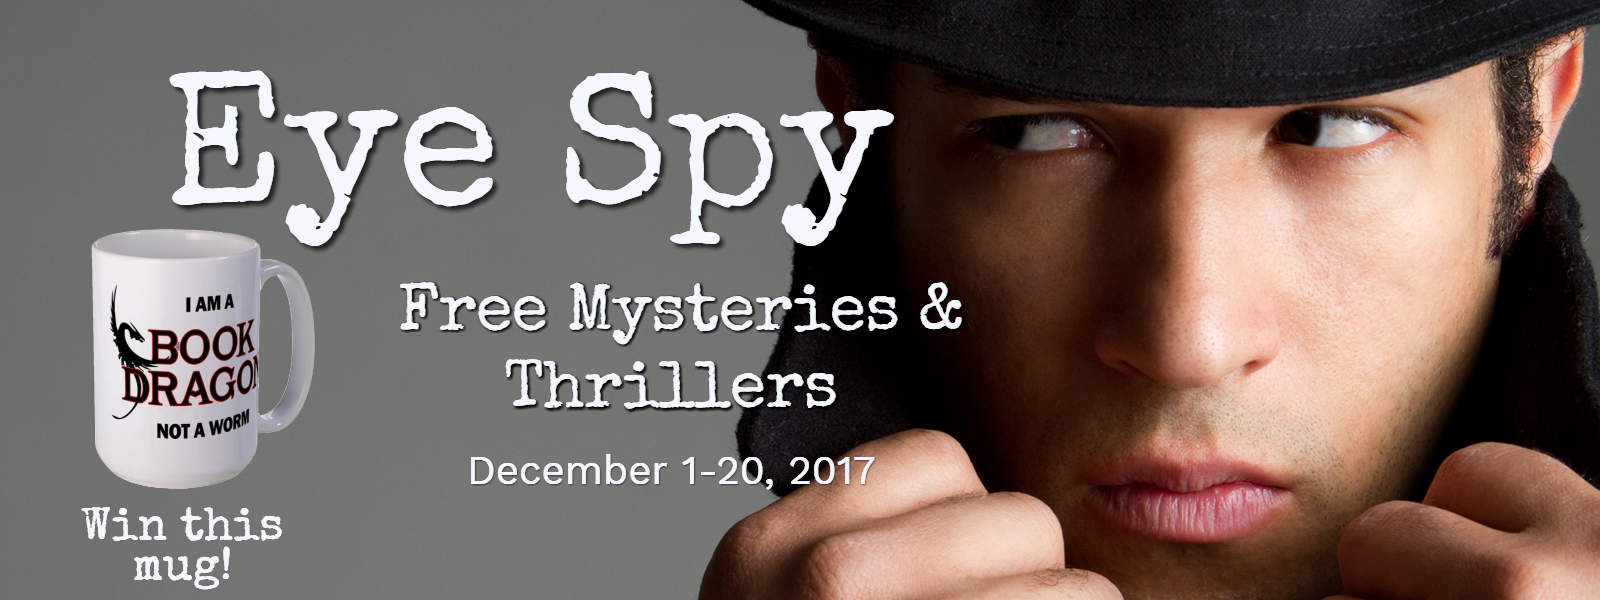 Eye Spy Mysteries and Thrillers